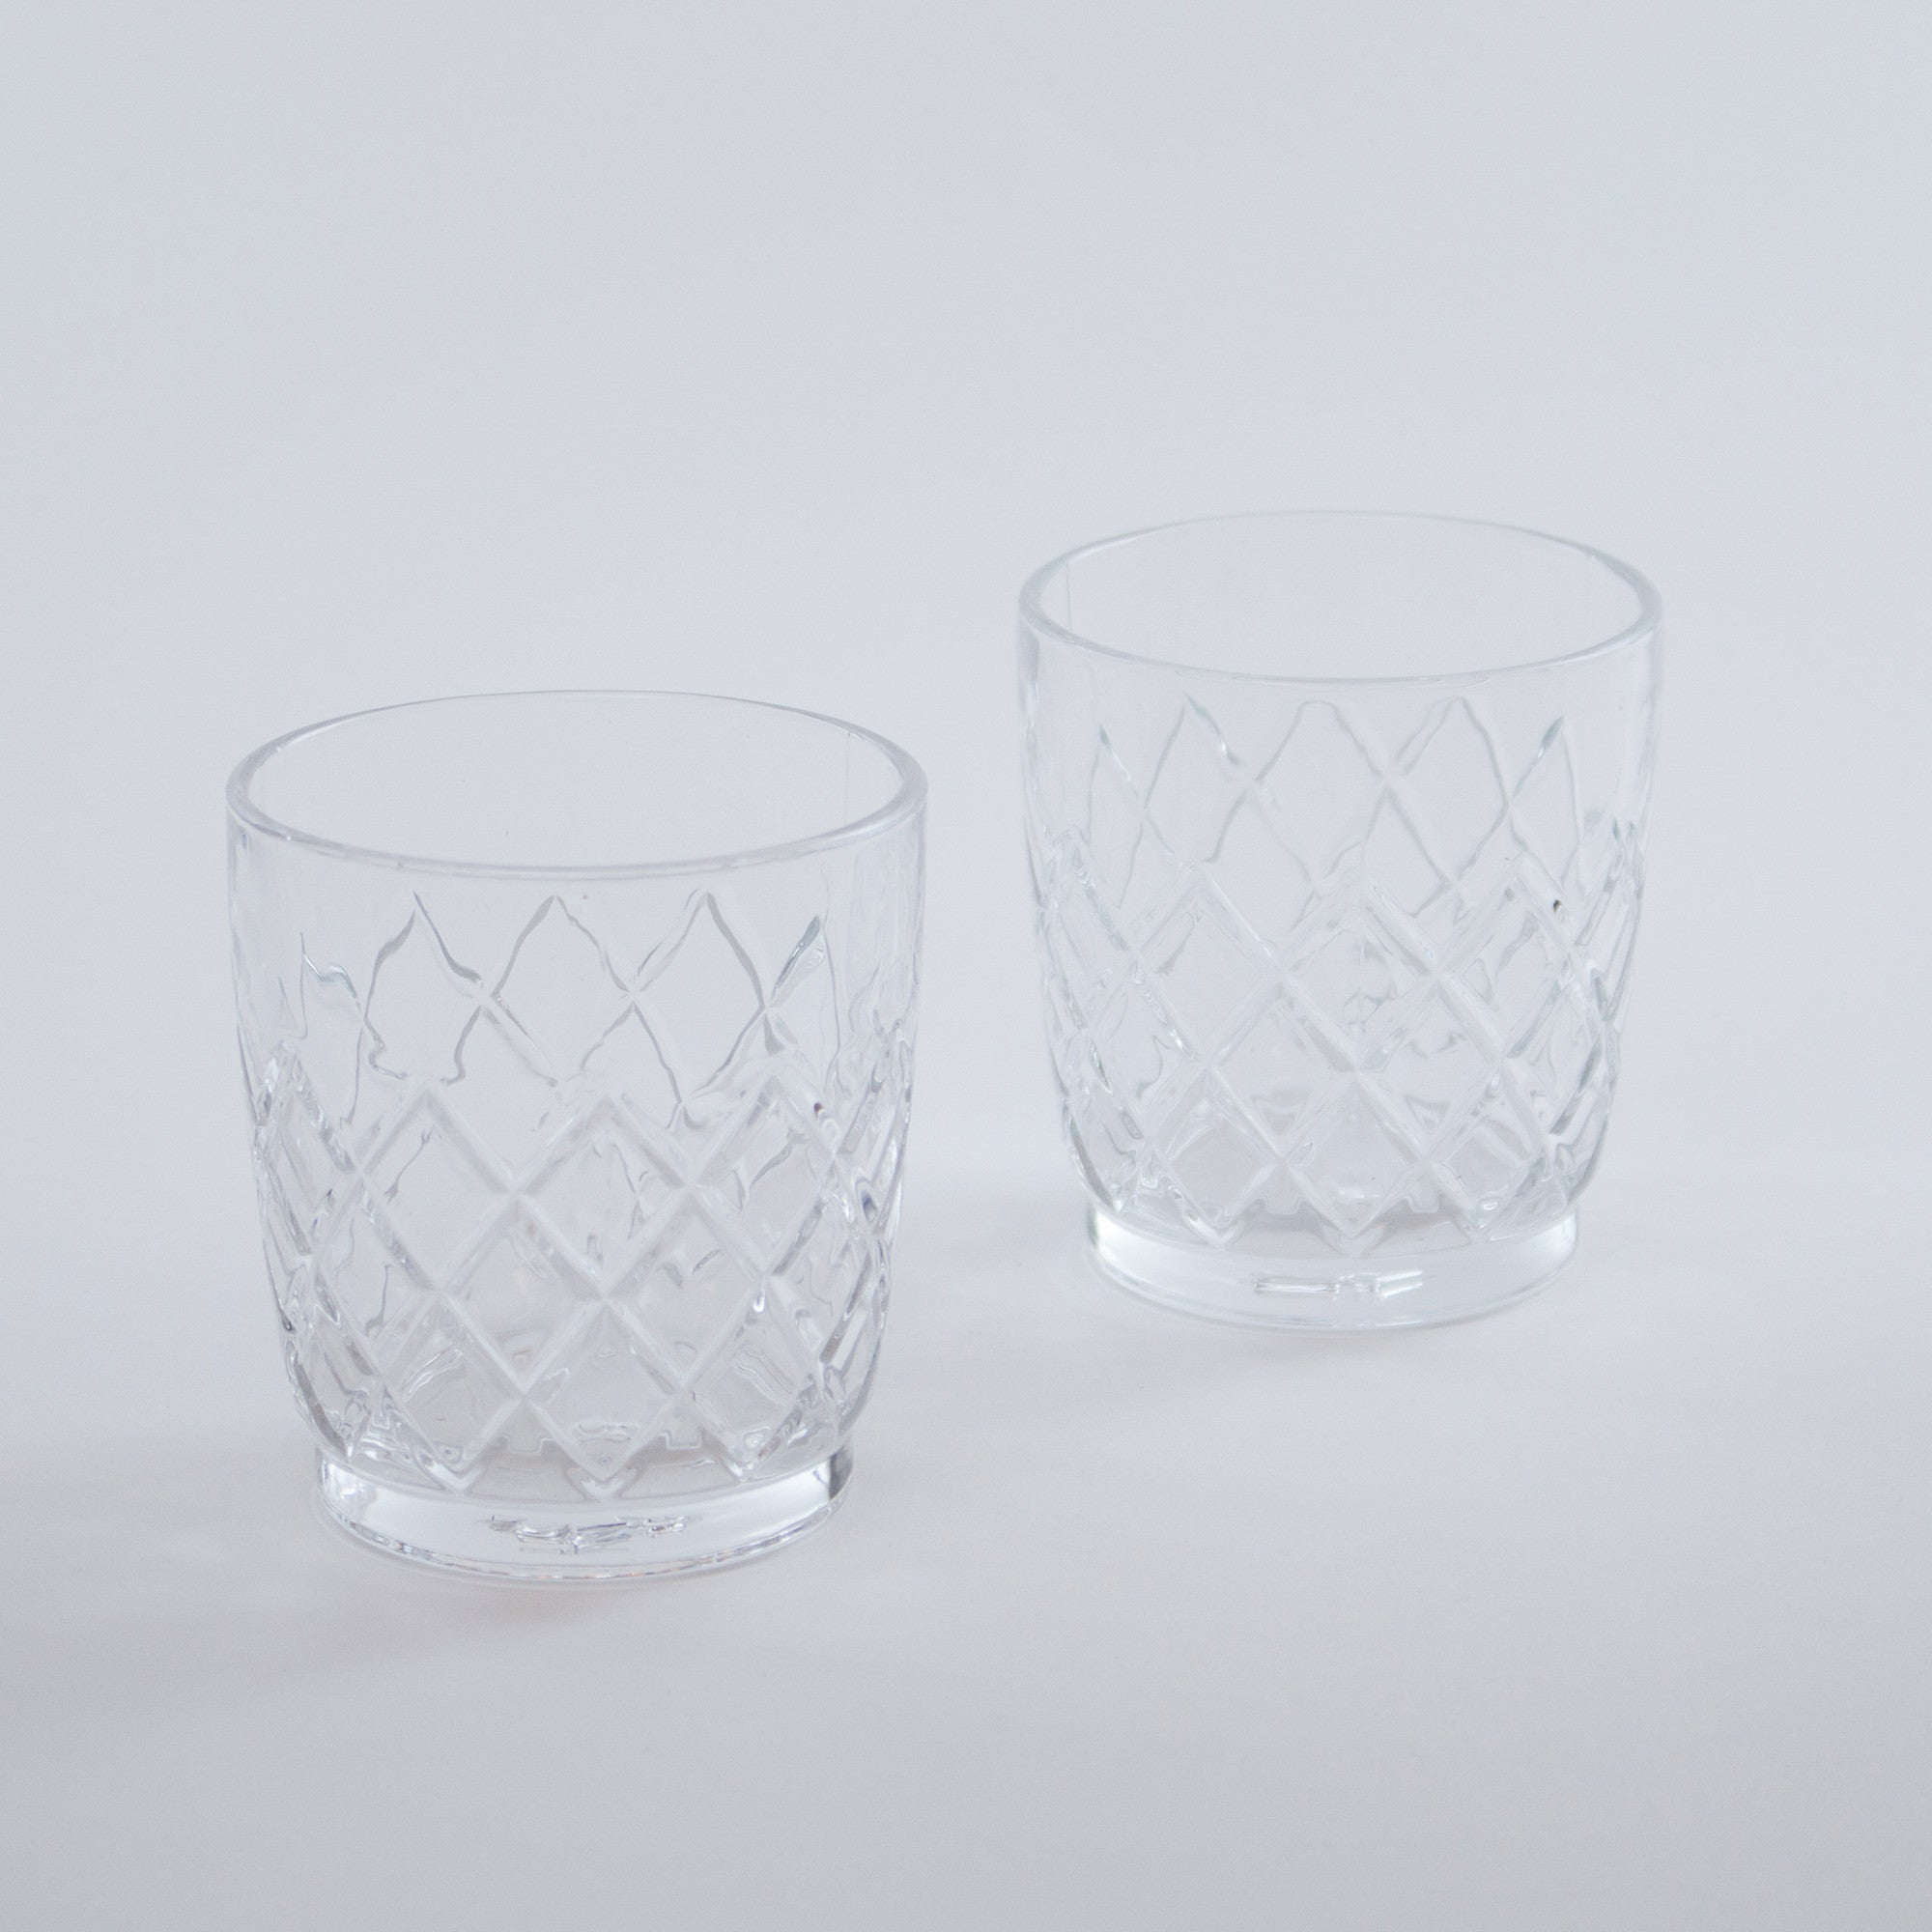 Yarai Double Rocks Glass (Set of 6)